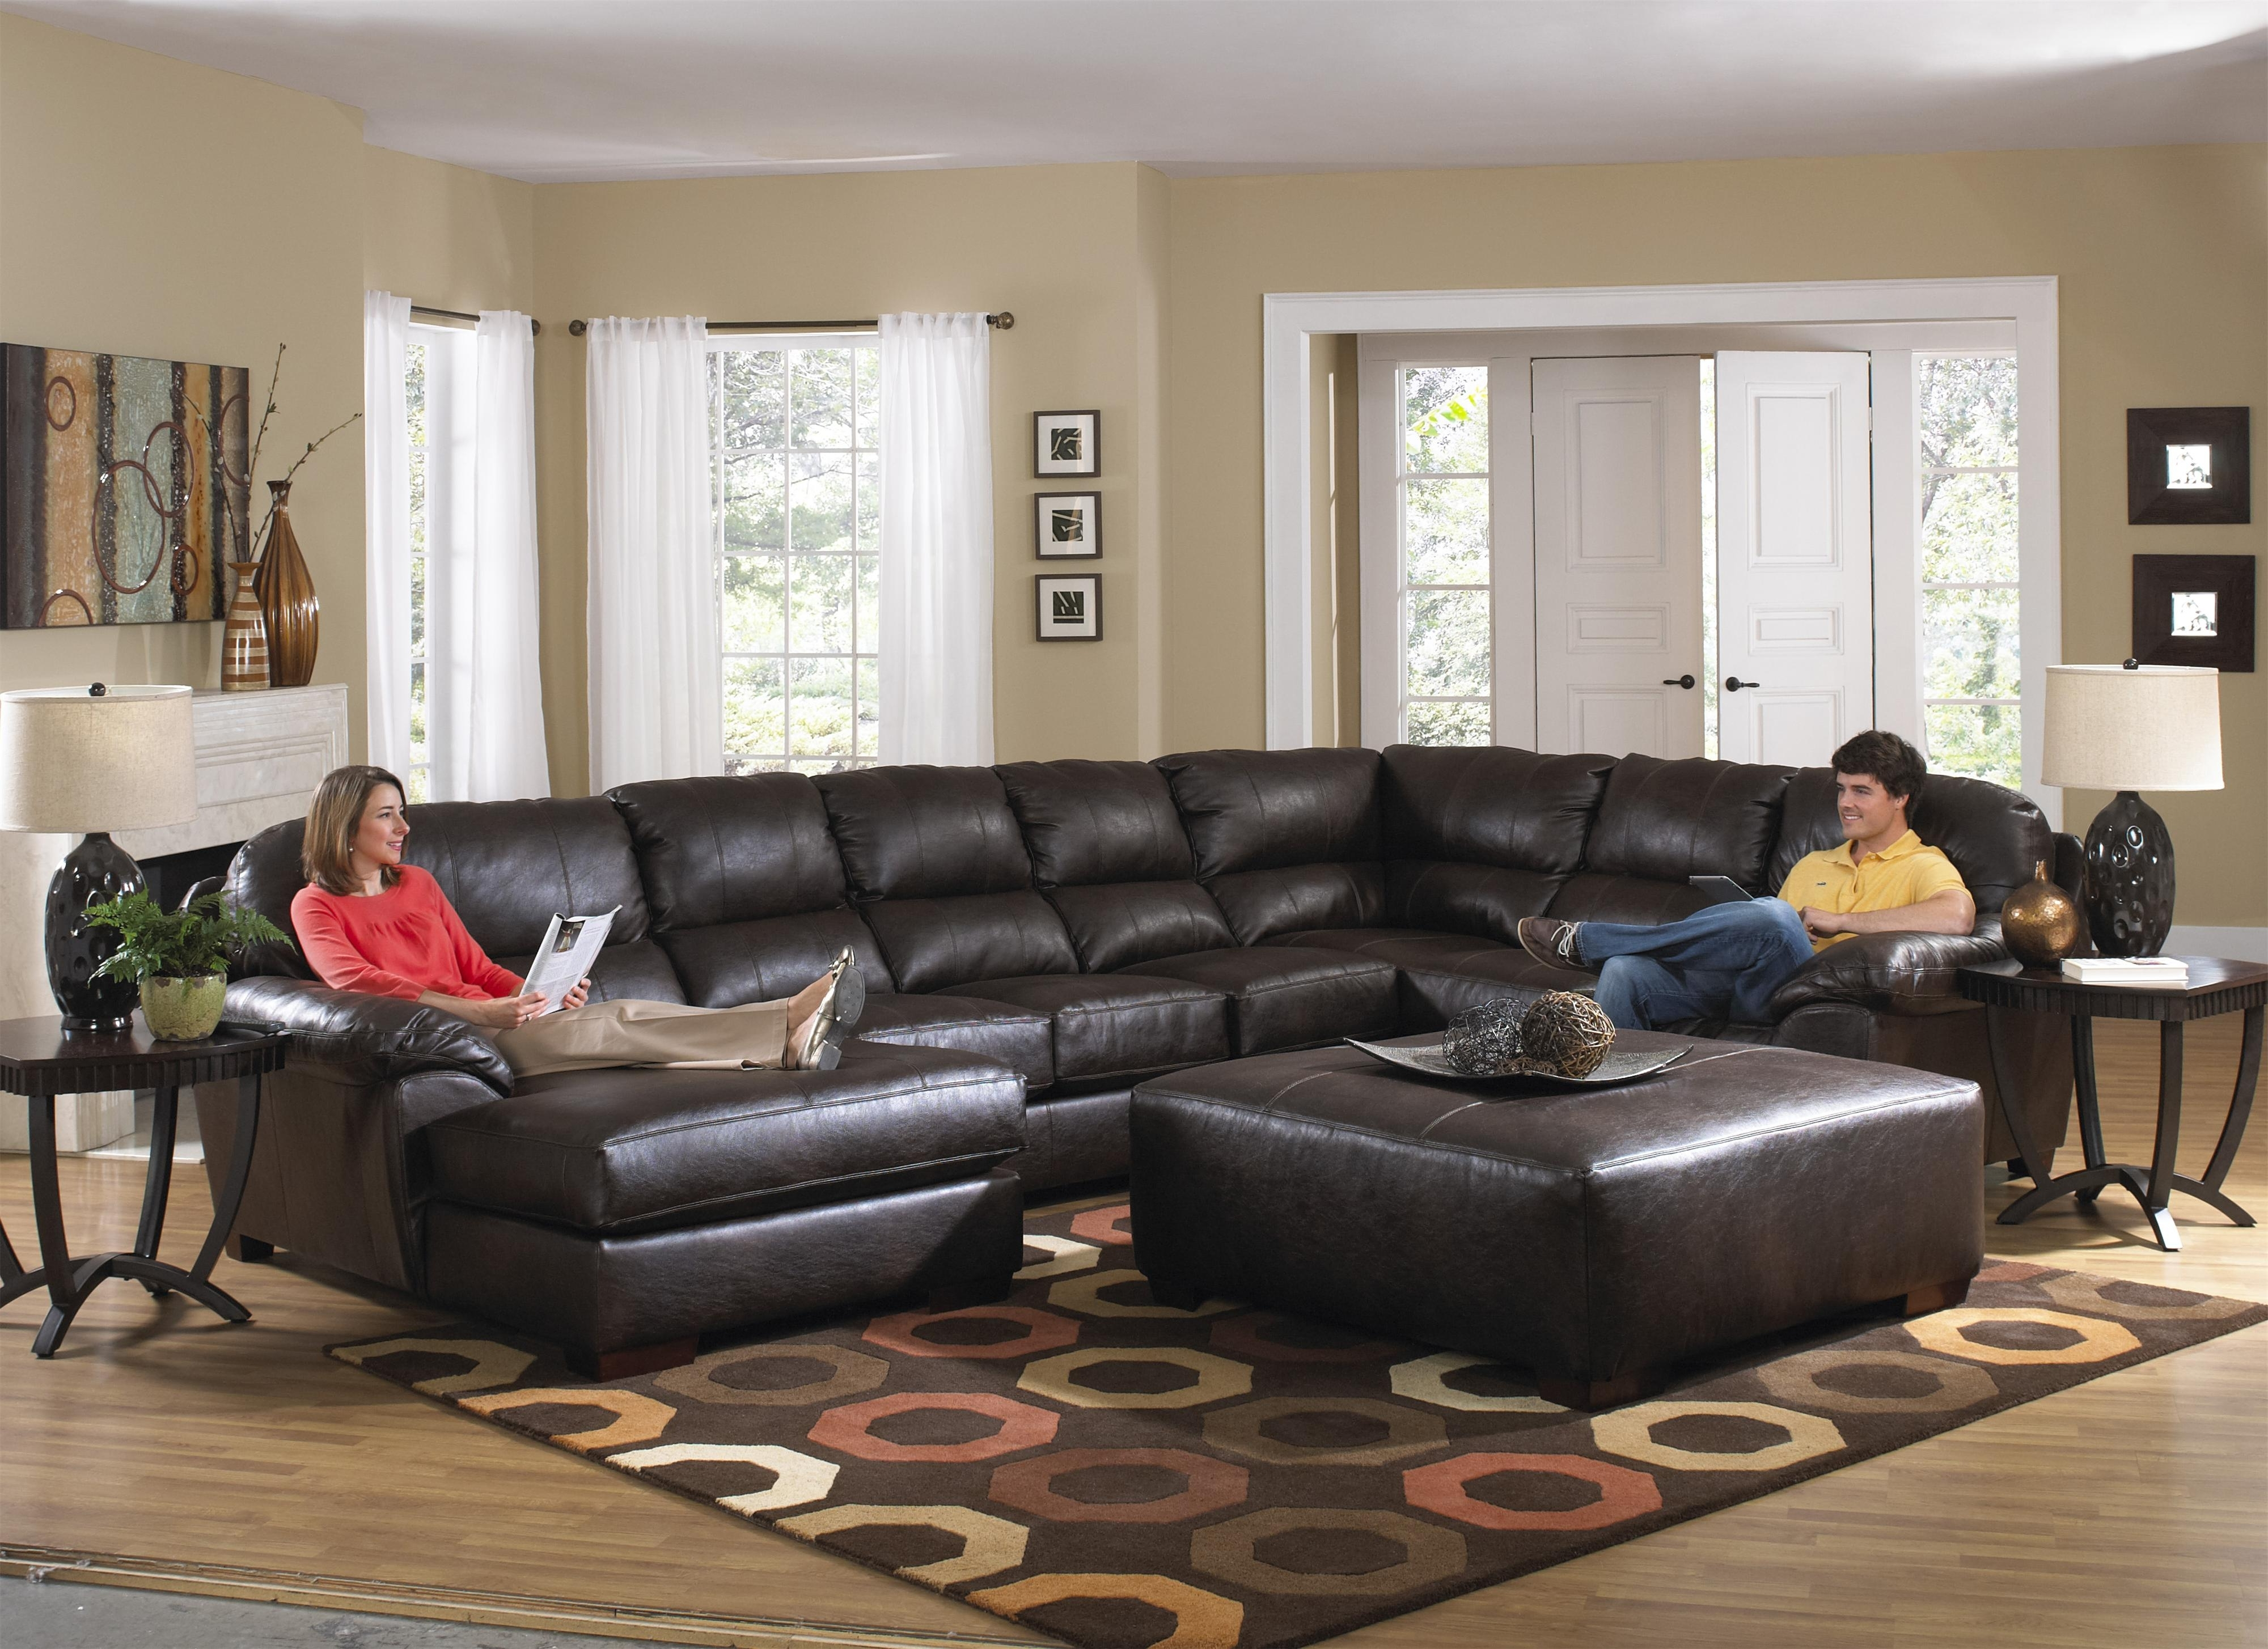 Widely Used Large Sectional Sofa With Chaise Lounge Cheap Sectional Sofas U For Large U Shaped Sectionals (View 18 of 20)